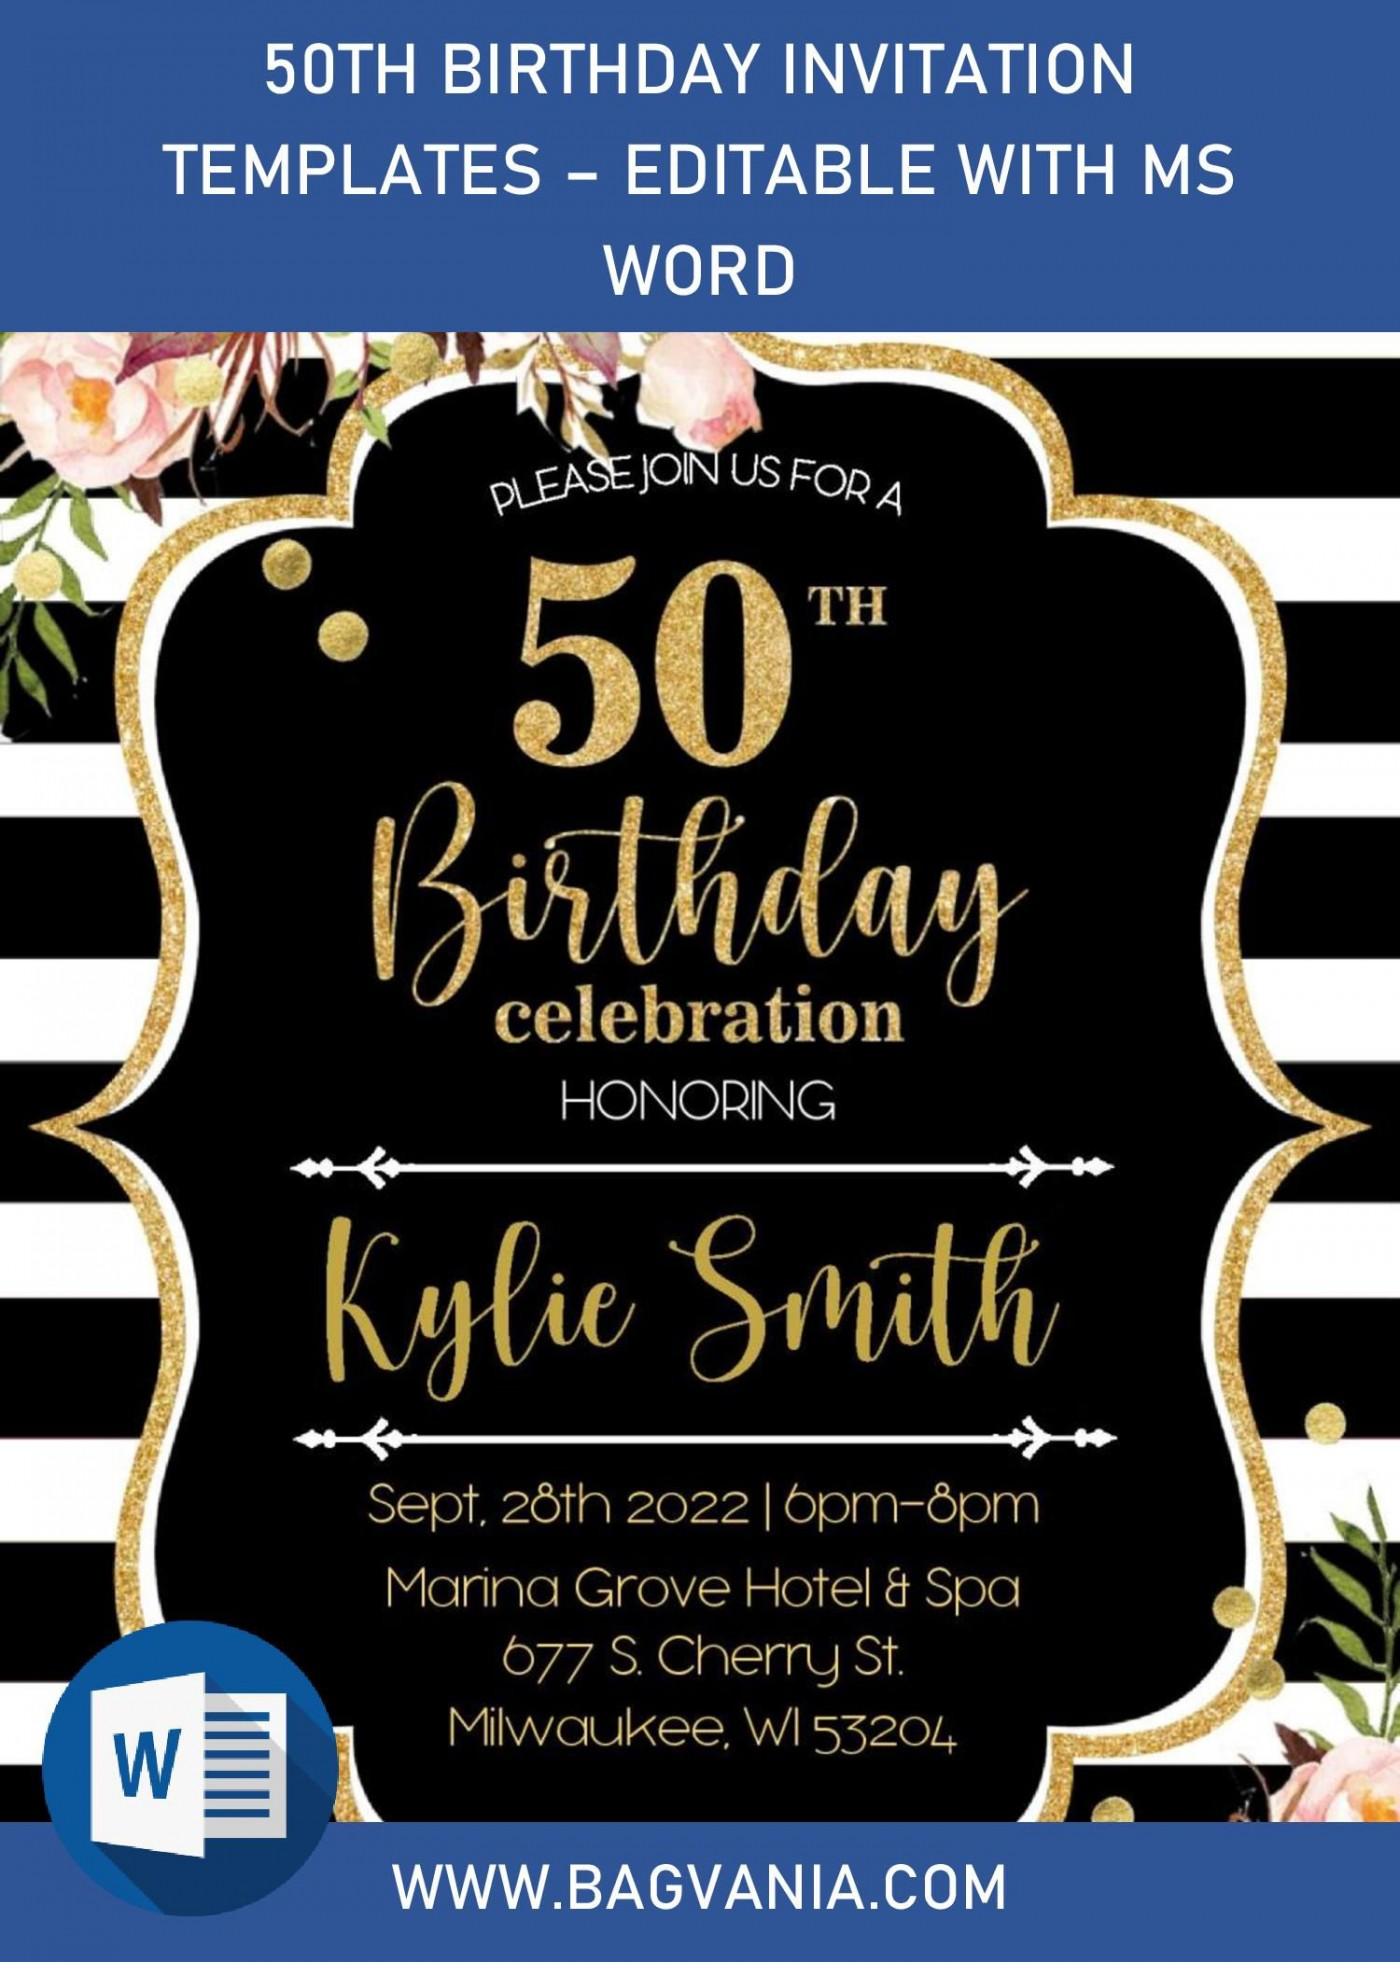 003 Phenomenal Microsoft Word 50th Birthday Invitation Template Highest Quality  Wedding Anniversary Editable1400